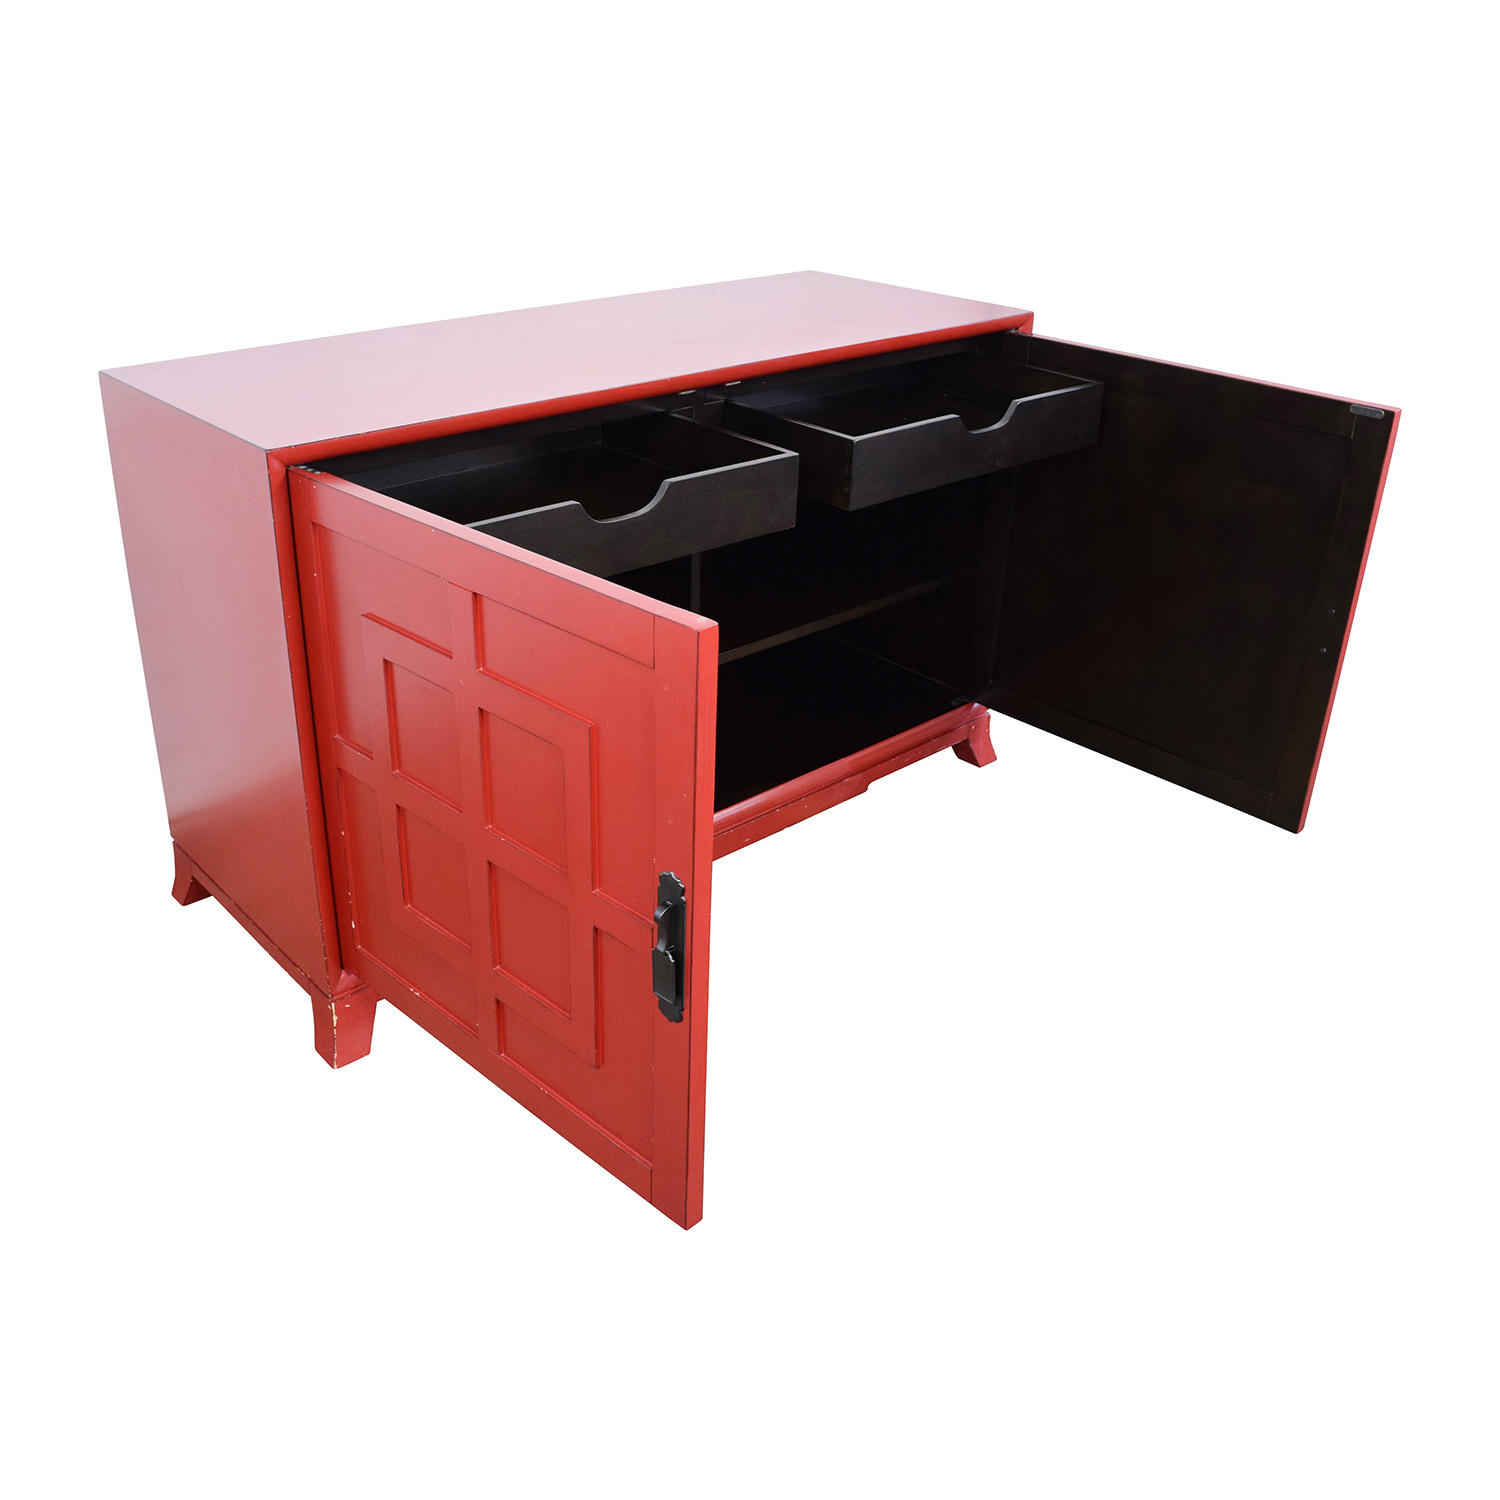 Crate and Barrel Crate & Barrel Red Media Storage used